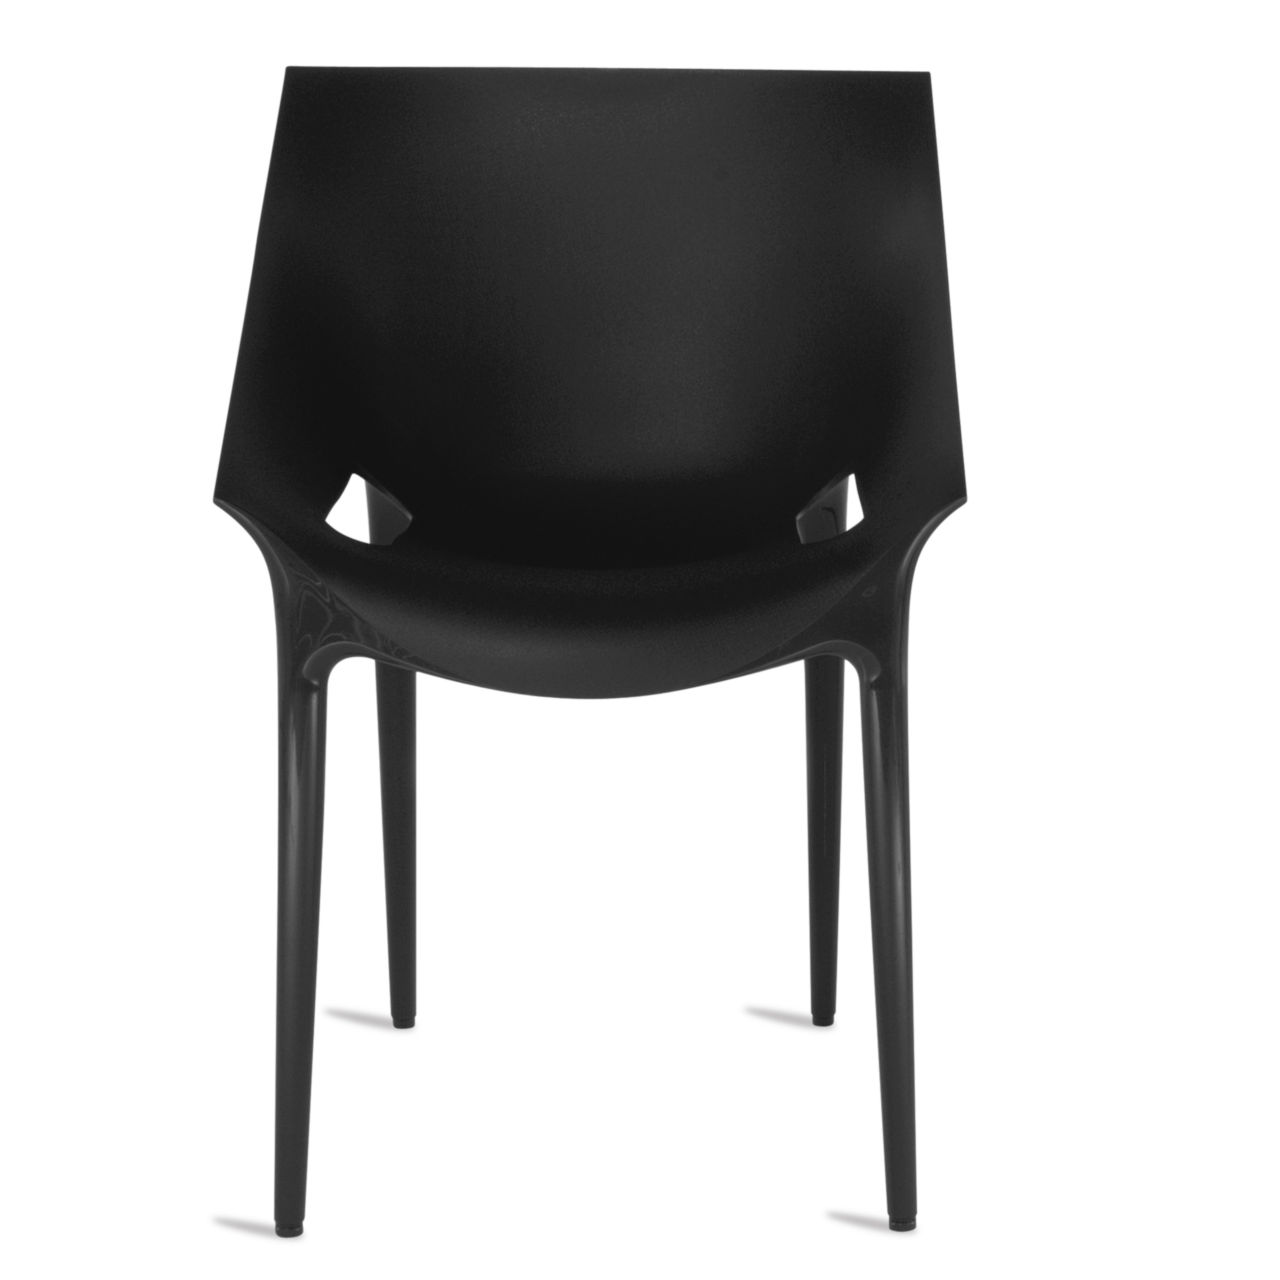 Dr Yes Chair in Black by Kartell